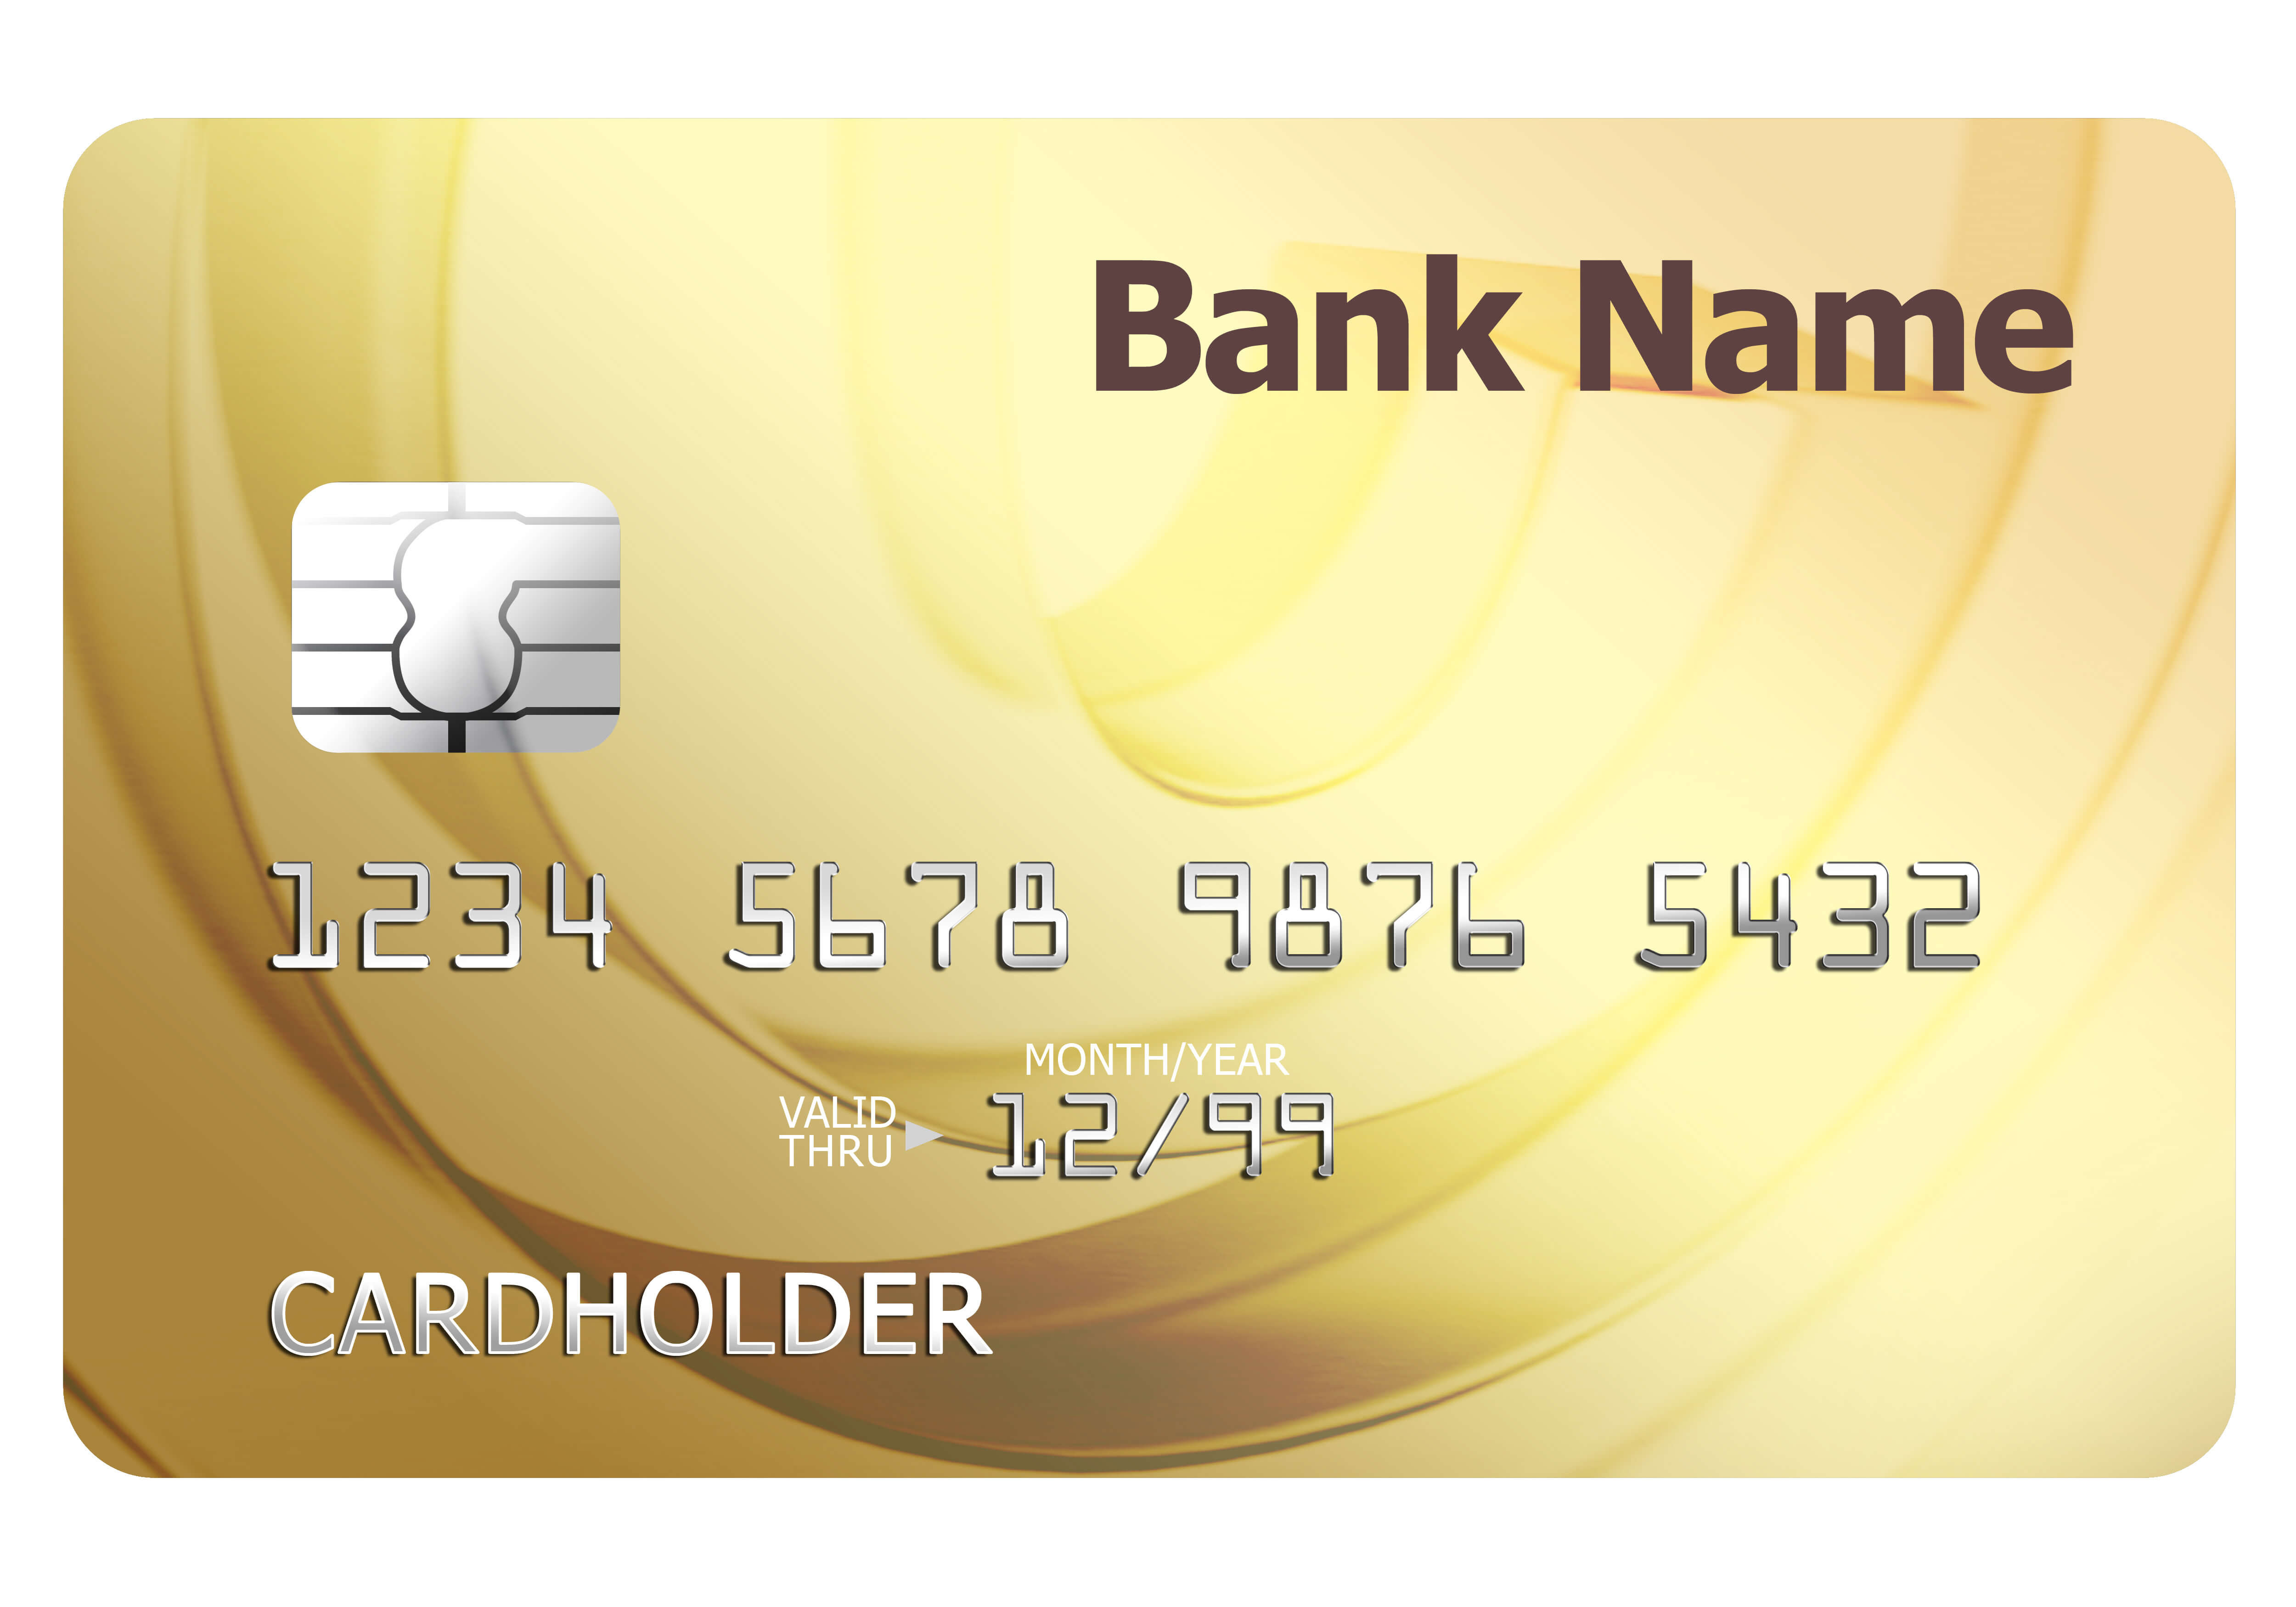 Credit Card Template | Psdgraphics in Credit Card Template For Kids